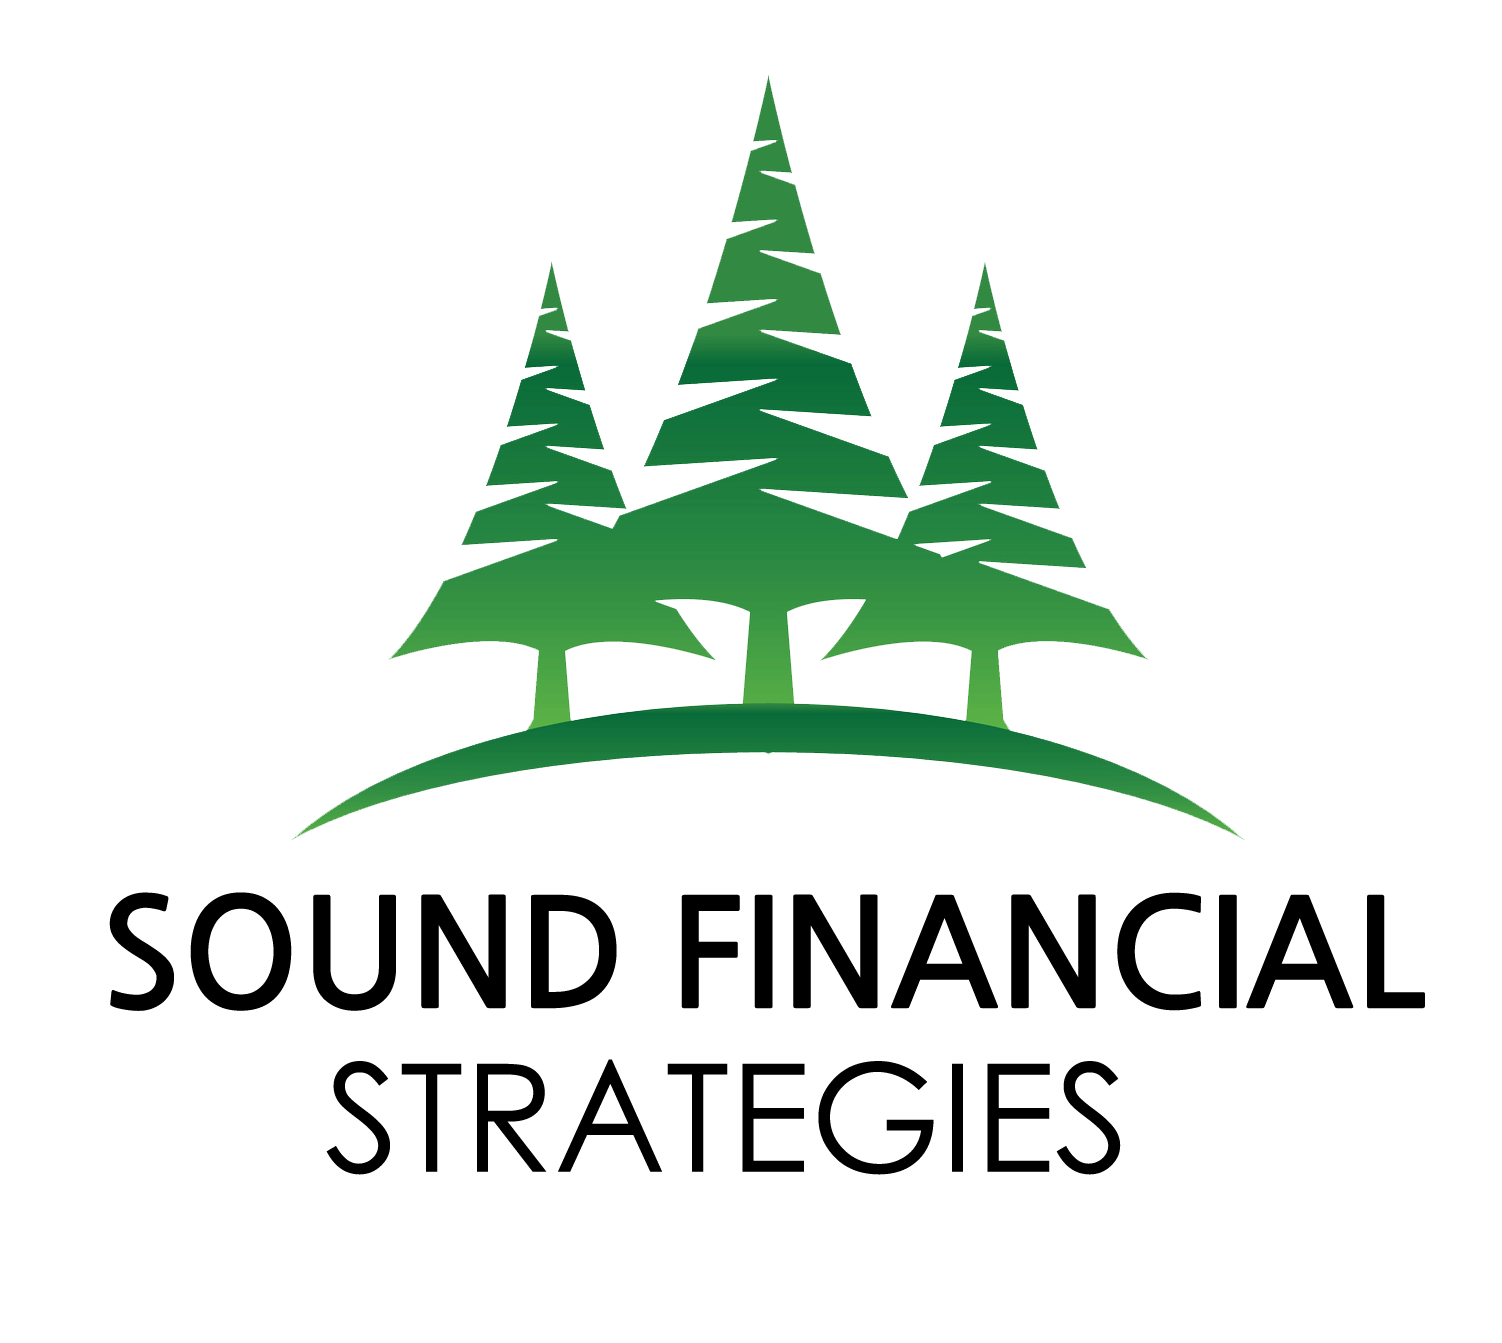 SOUND FINANCIAL STRATEGIES